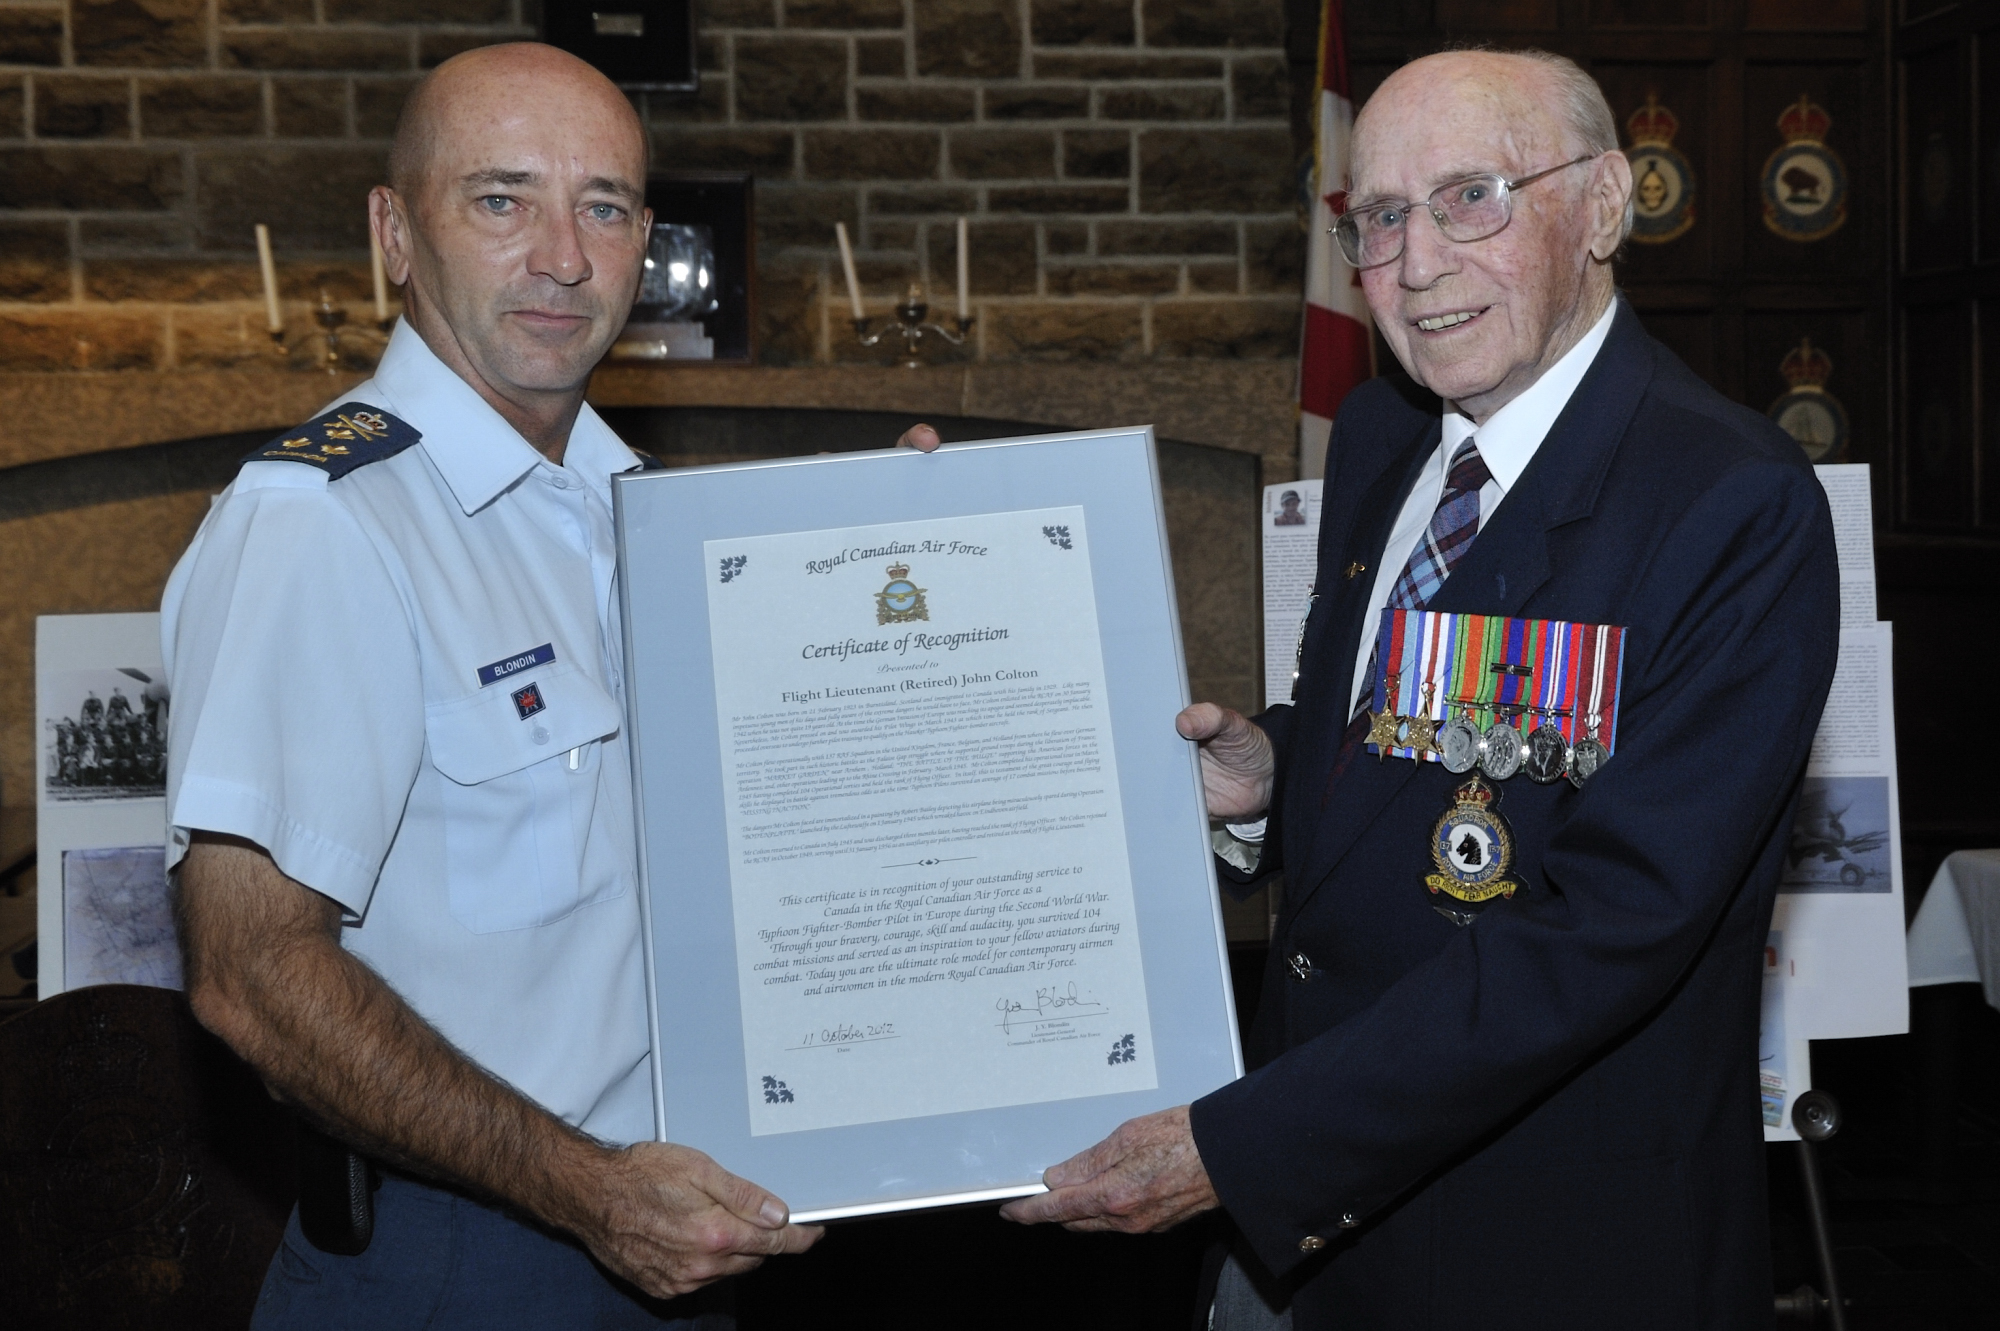 "From fighter pilot to fighter pilot: Lieutenant-General Yvan Blondin presents a Royal Canadian Air Force certificate of recognition to Flight Lieutenant John Colton in recognition of his ""outstanding service to Canada in the Royal Canadian Air Force…during the Second World War"". PHOTO: Sergeant Paz Quillé."